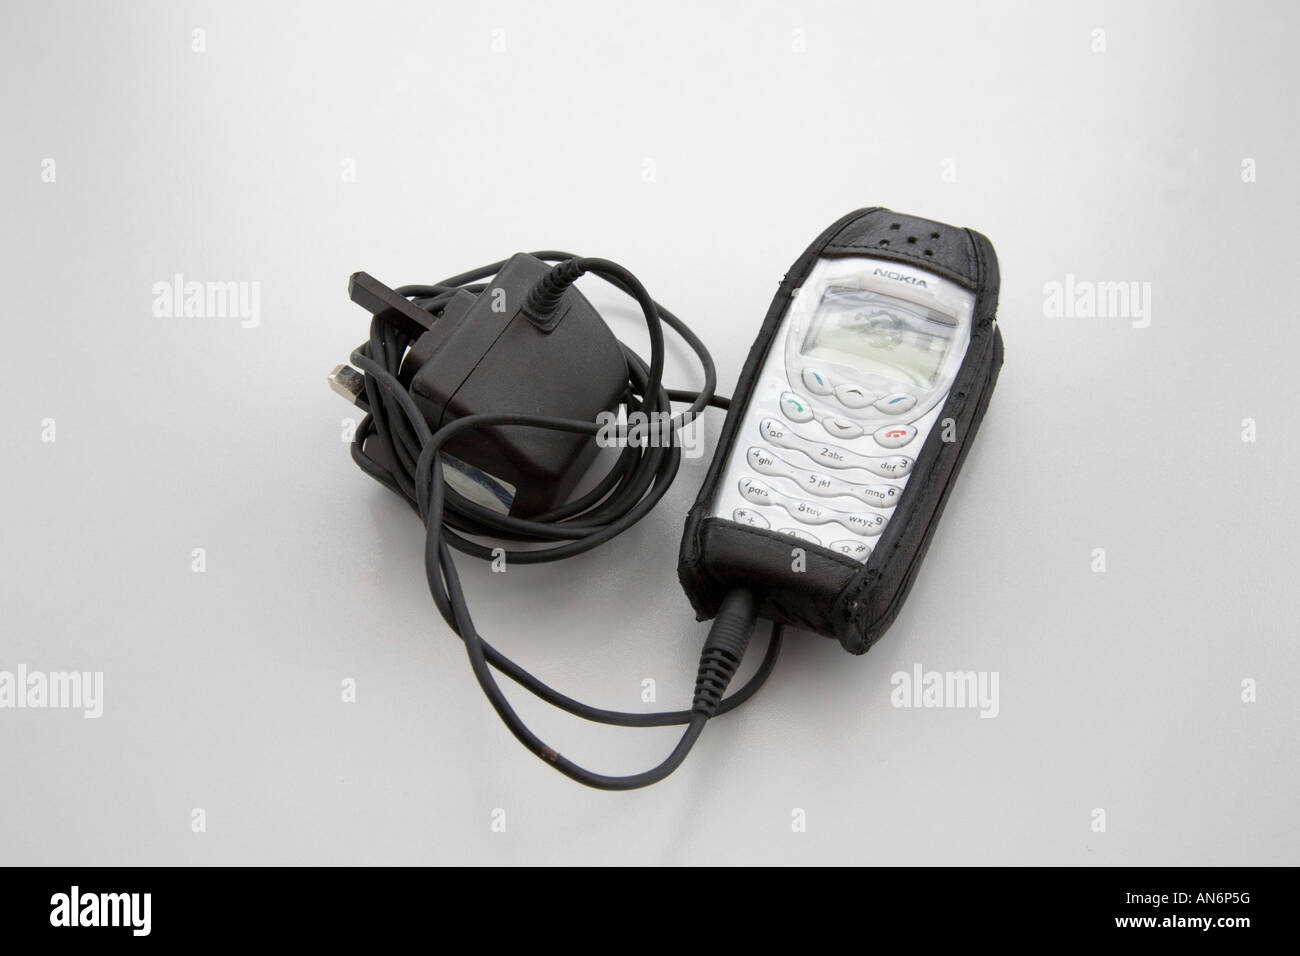 Old Mobile Phone Stock Photos Images Page Circuit Board From A Nokia 3310 Photo Picture And Studio Close Up Style Attached To Charger Image